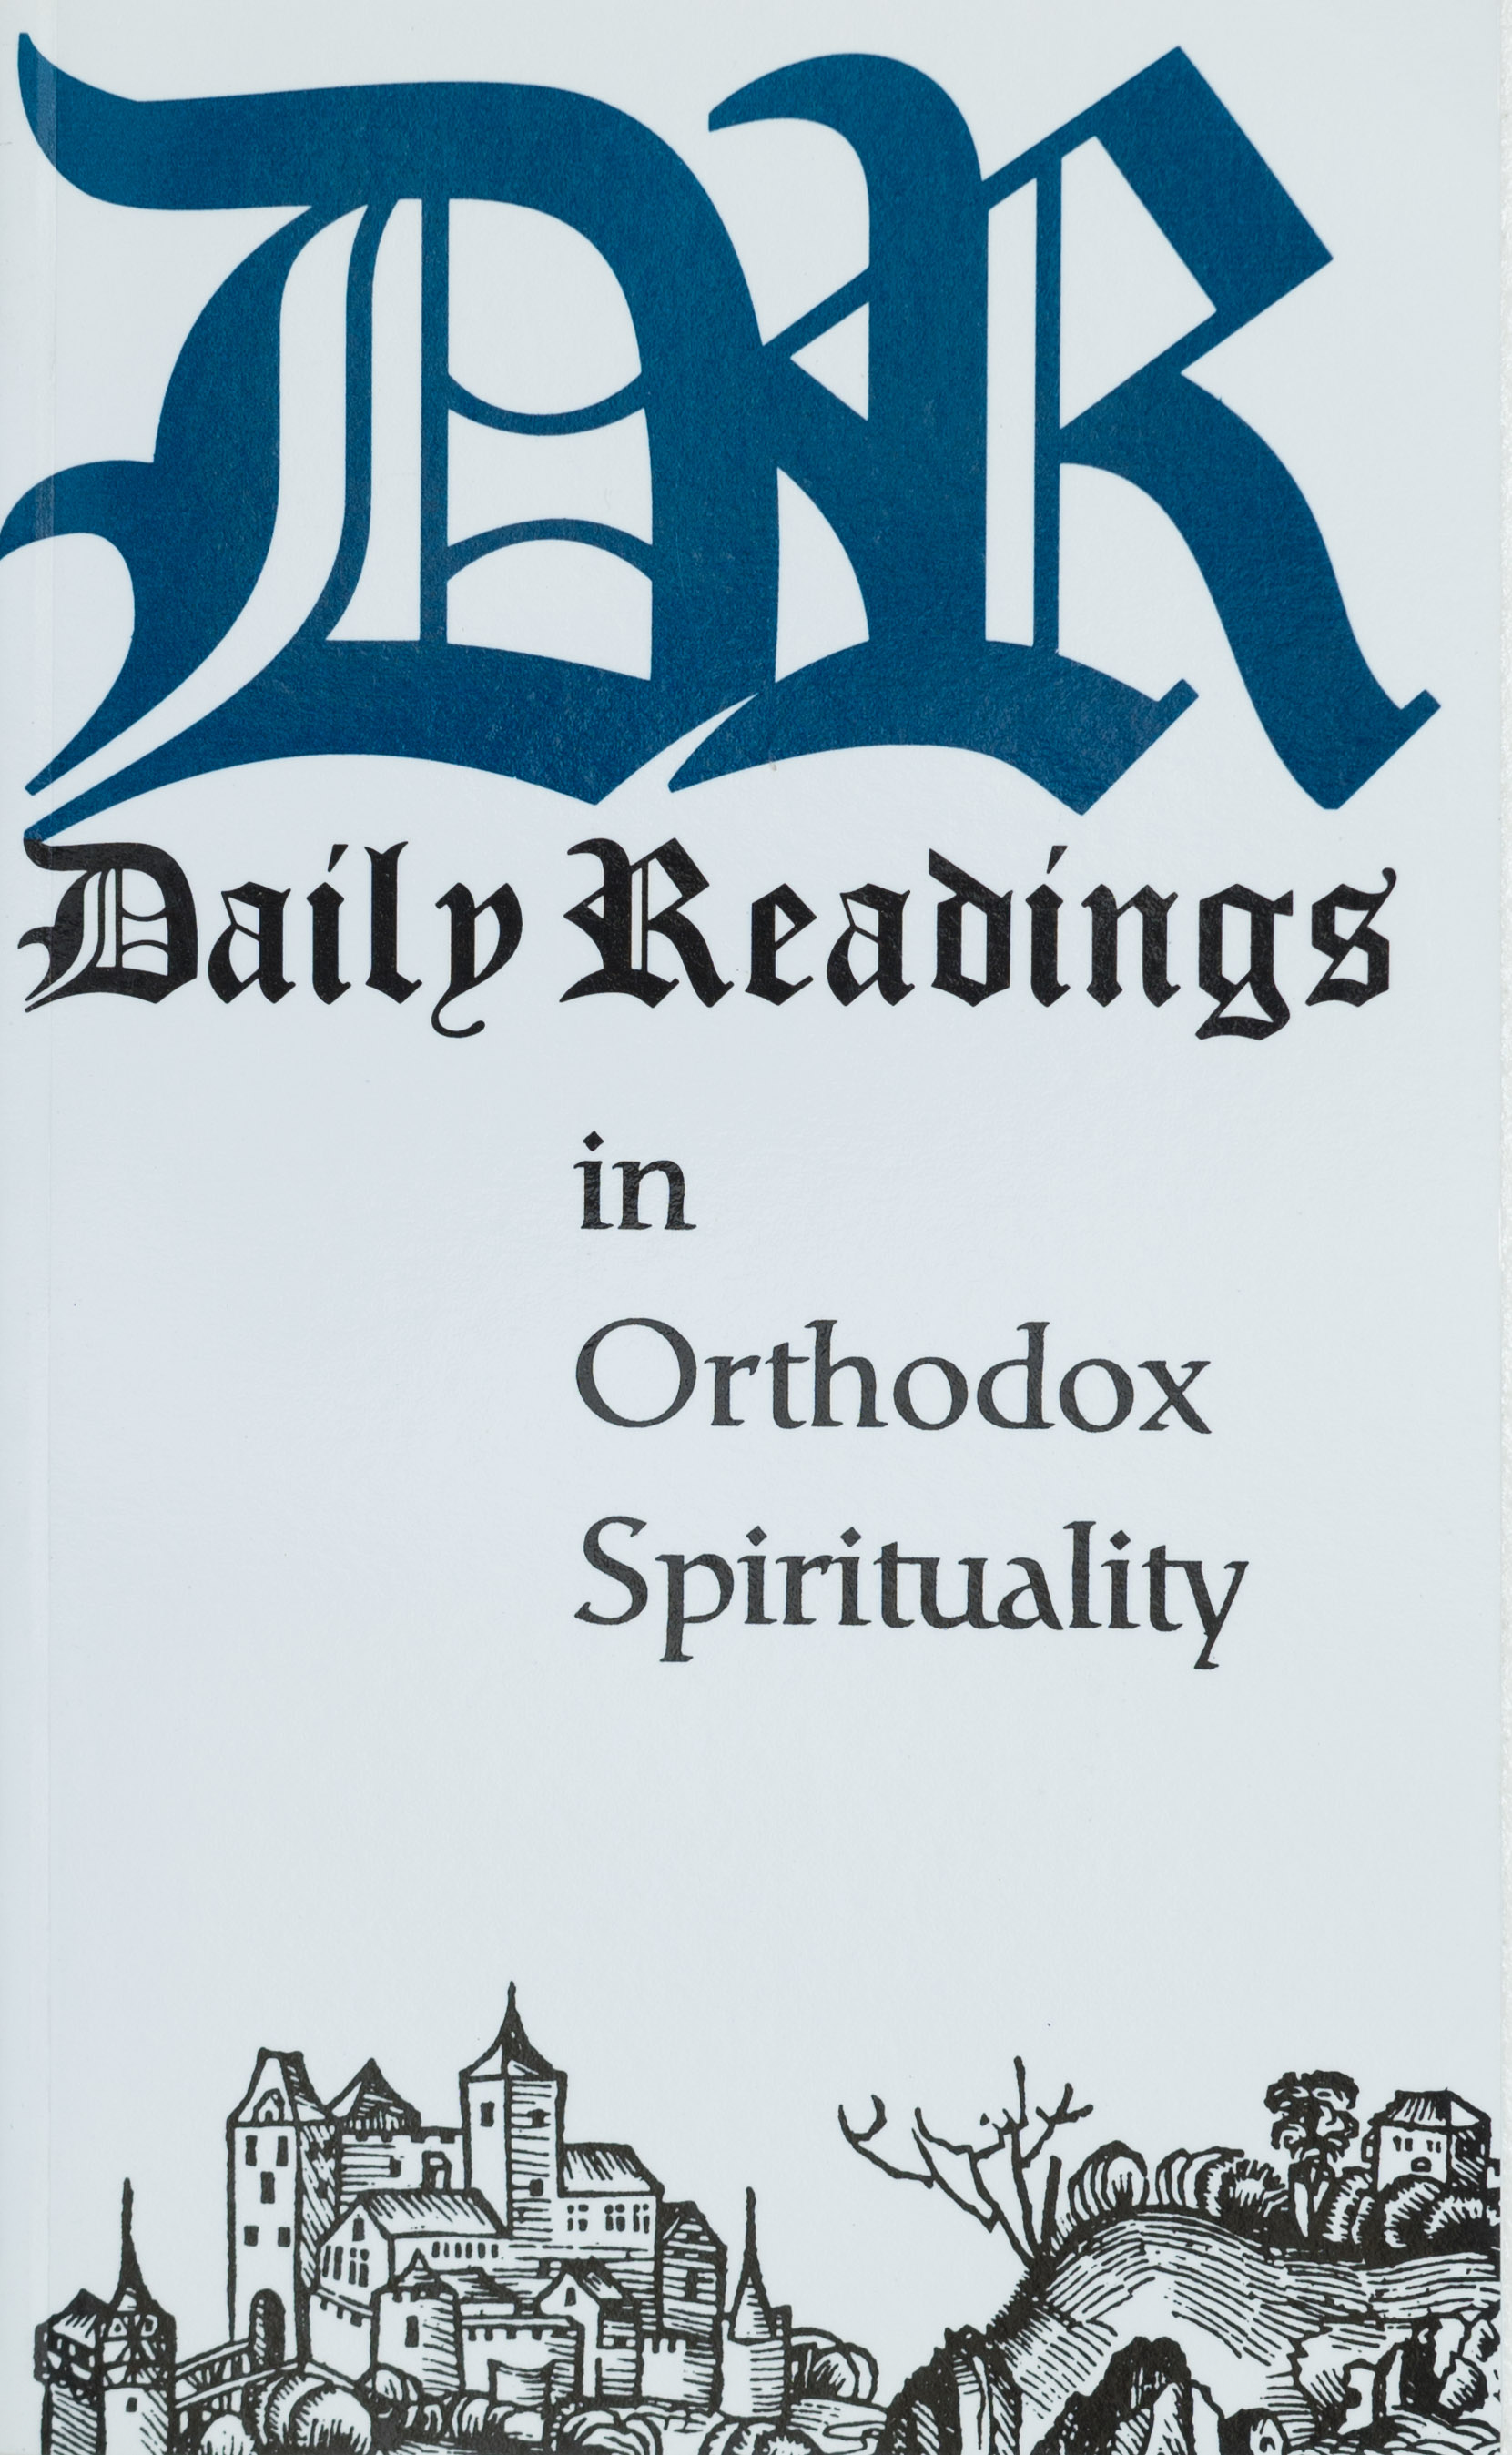 Daily Readings in Orthodox Spirituality                                     OUT OF PRINT